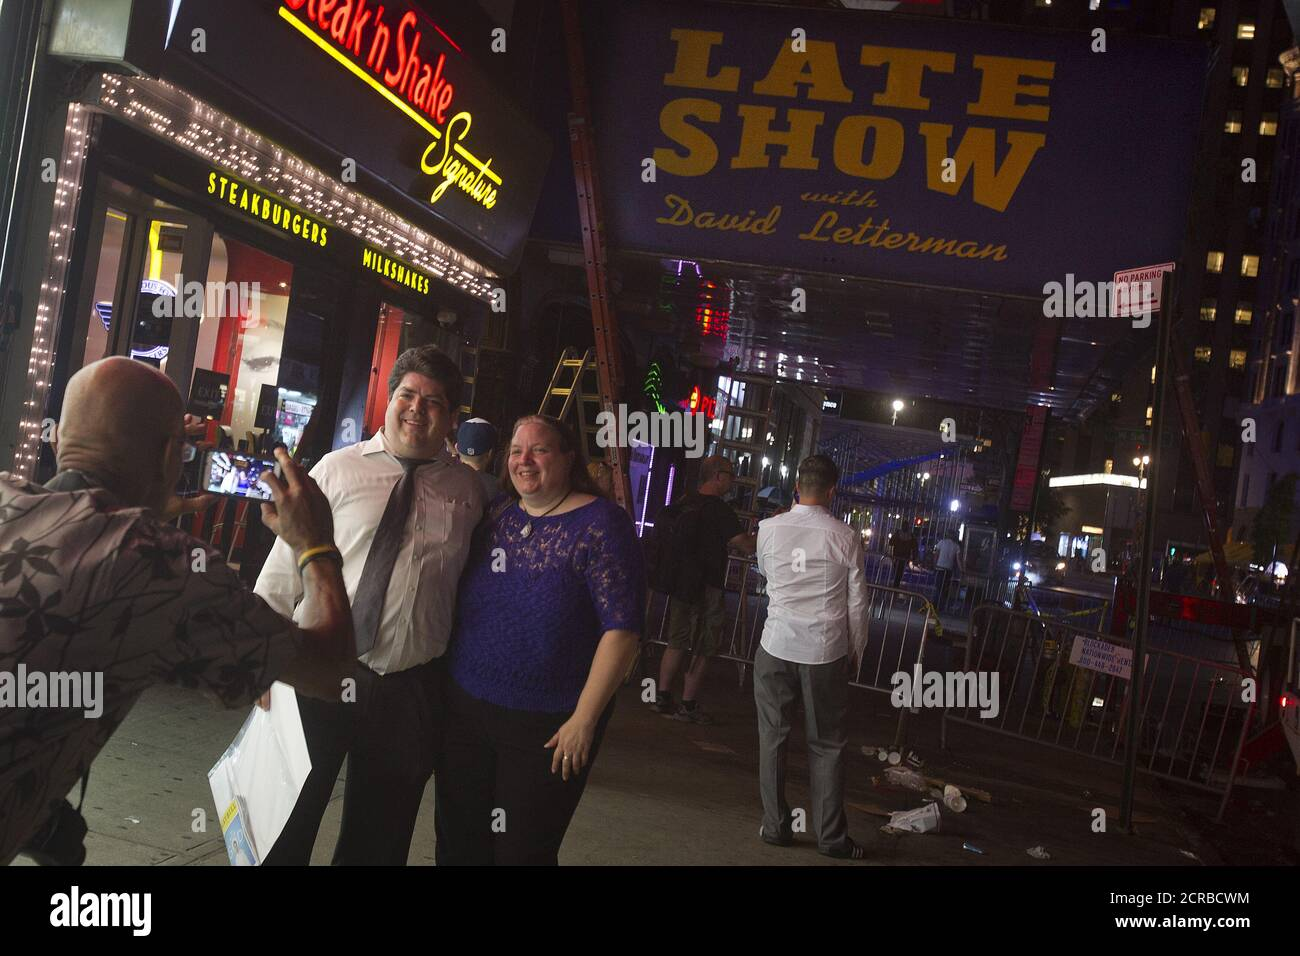 """People pose for a photo as workers remove the marquee from the Ed Sullivan Theater where """"The Late Show"""" with David Letterman used to tape in the Manhattan borough New York May 27, 2015. The taping and broadcast of the final edition of """"The Late Show"""" was May 20, and workers are now slowly transforming the theater for the show's new host Stephen Colbert which will premiere on September 8, 2015.   REUTERS/Carlo Allegri Stock Photo"""